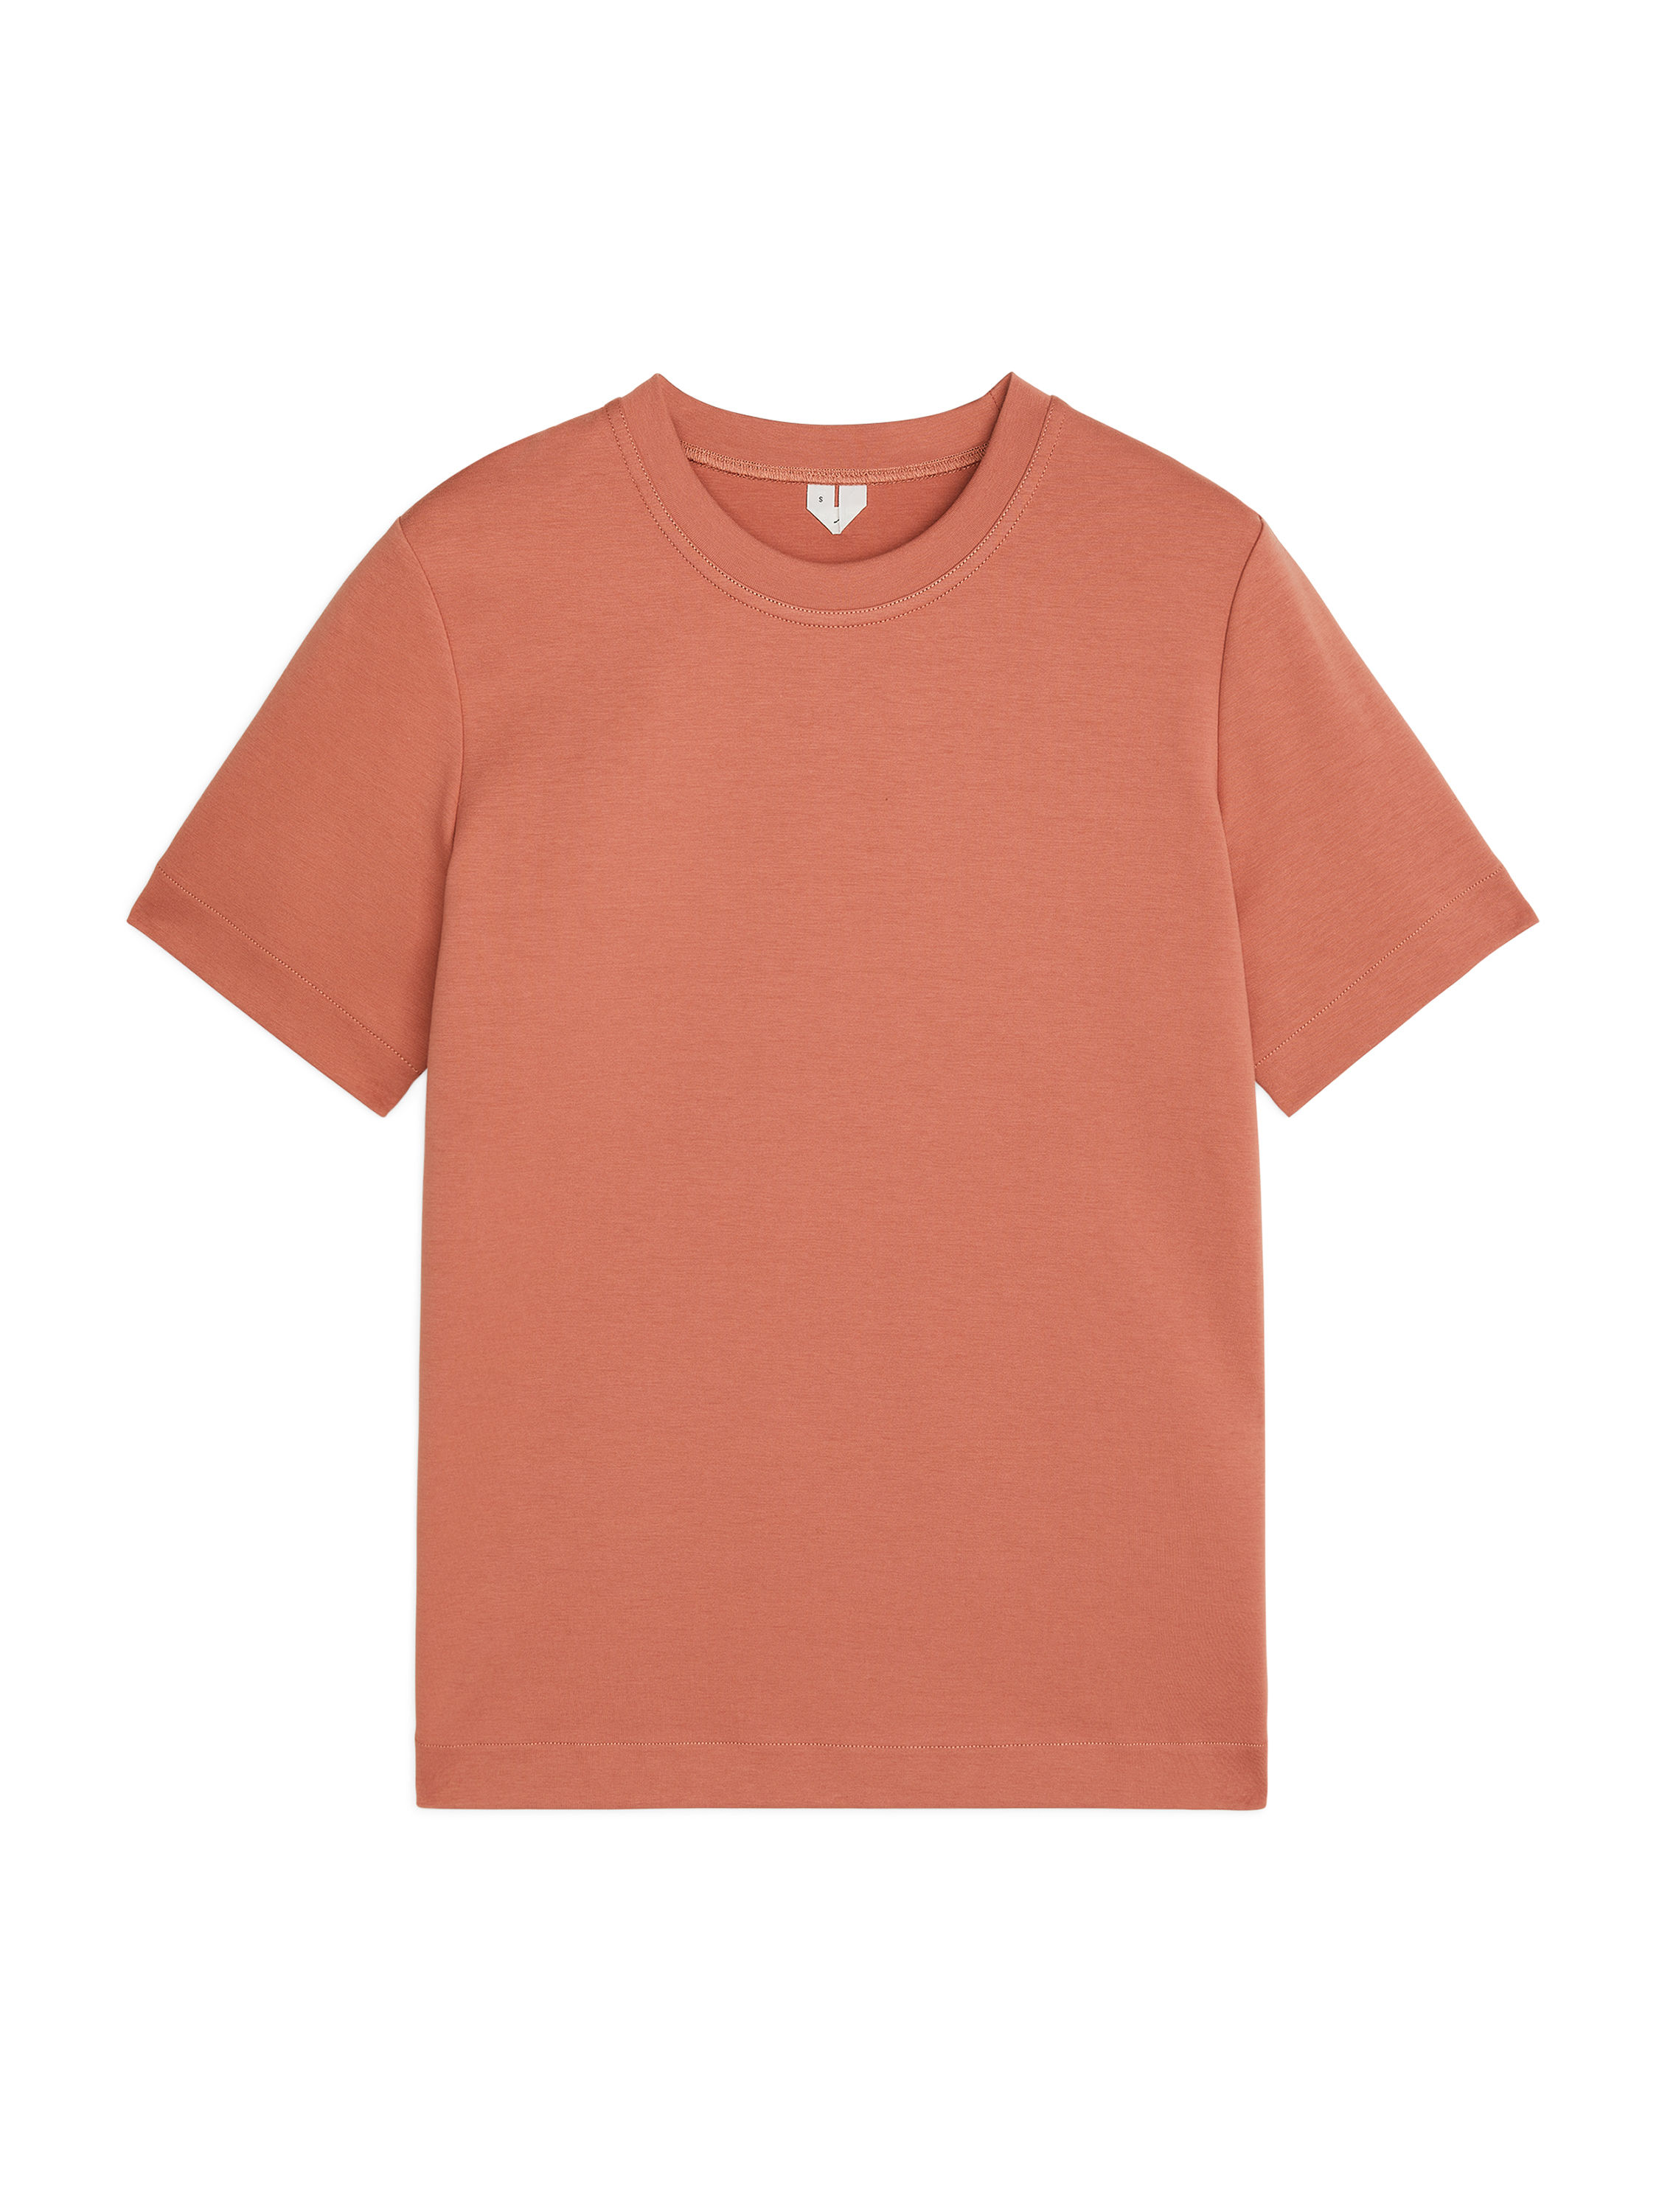 Fabric Swatch image of Arket heavy-weight t-shirt in orange